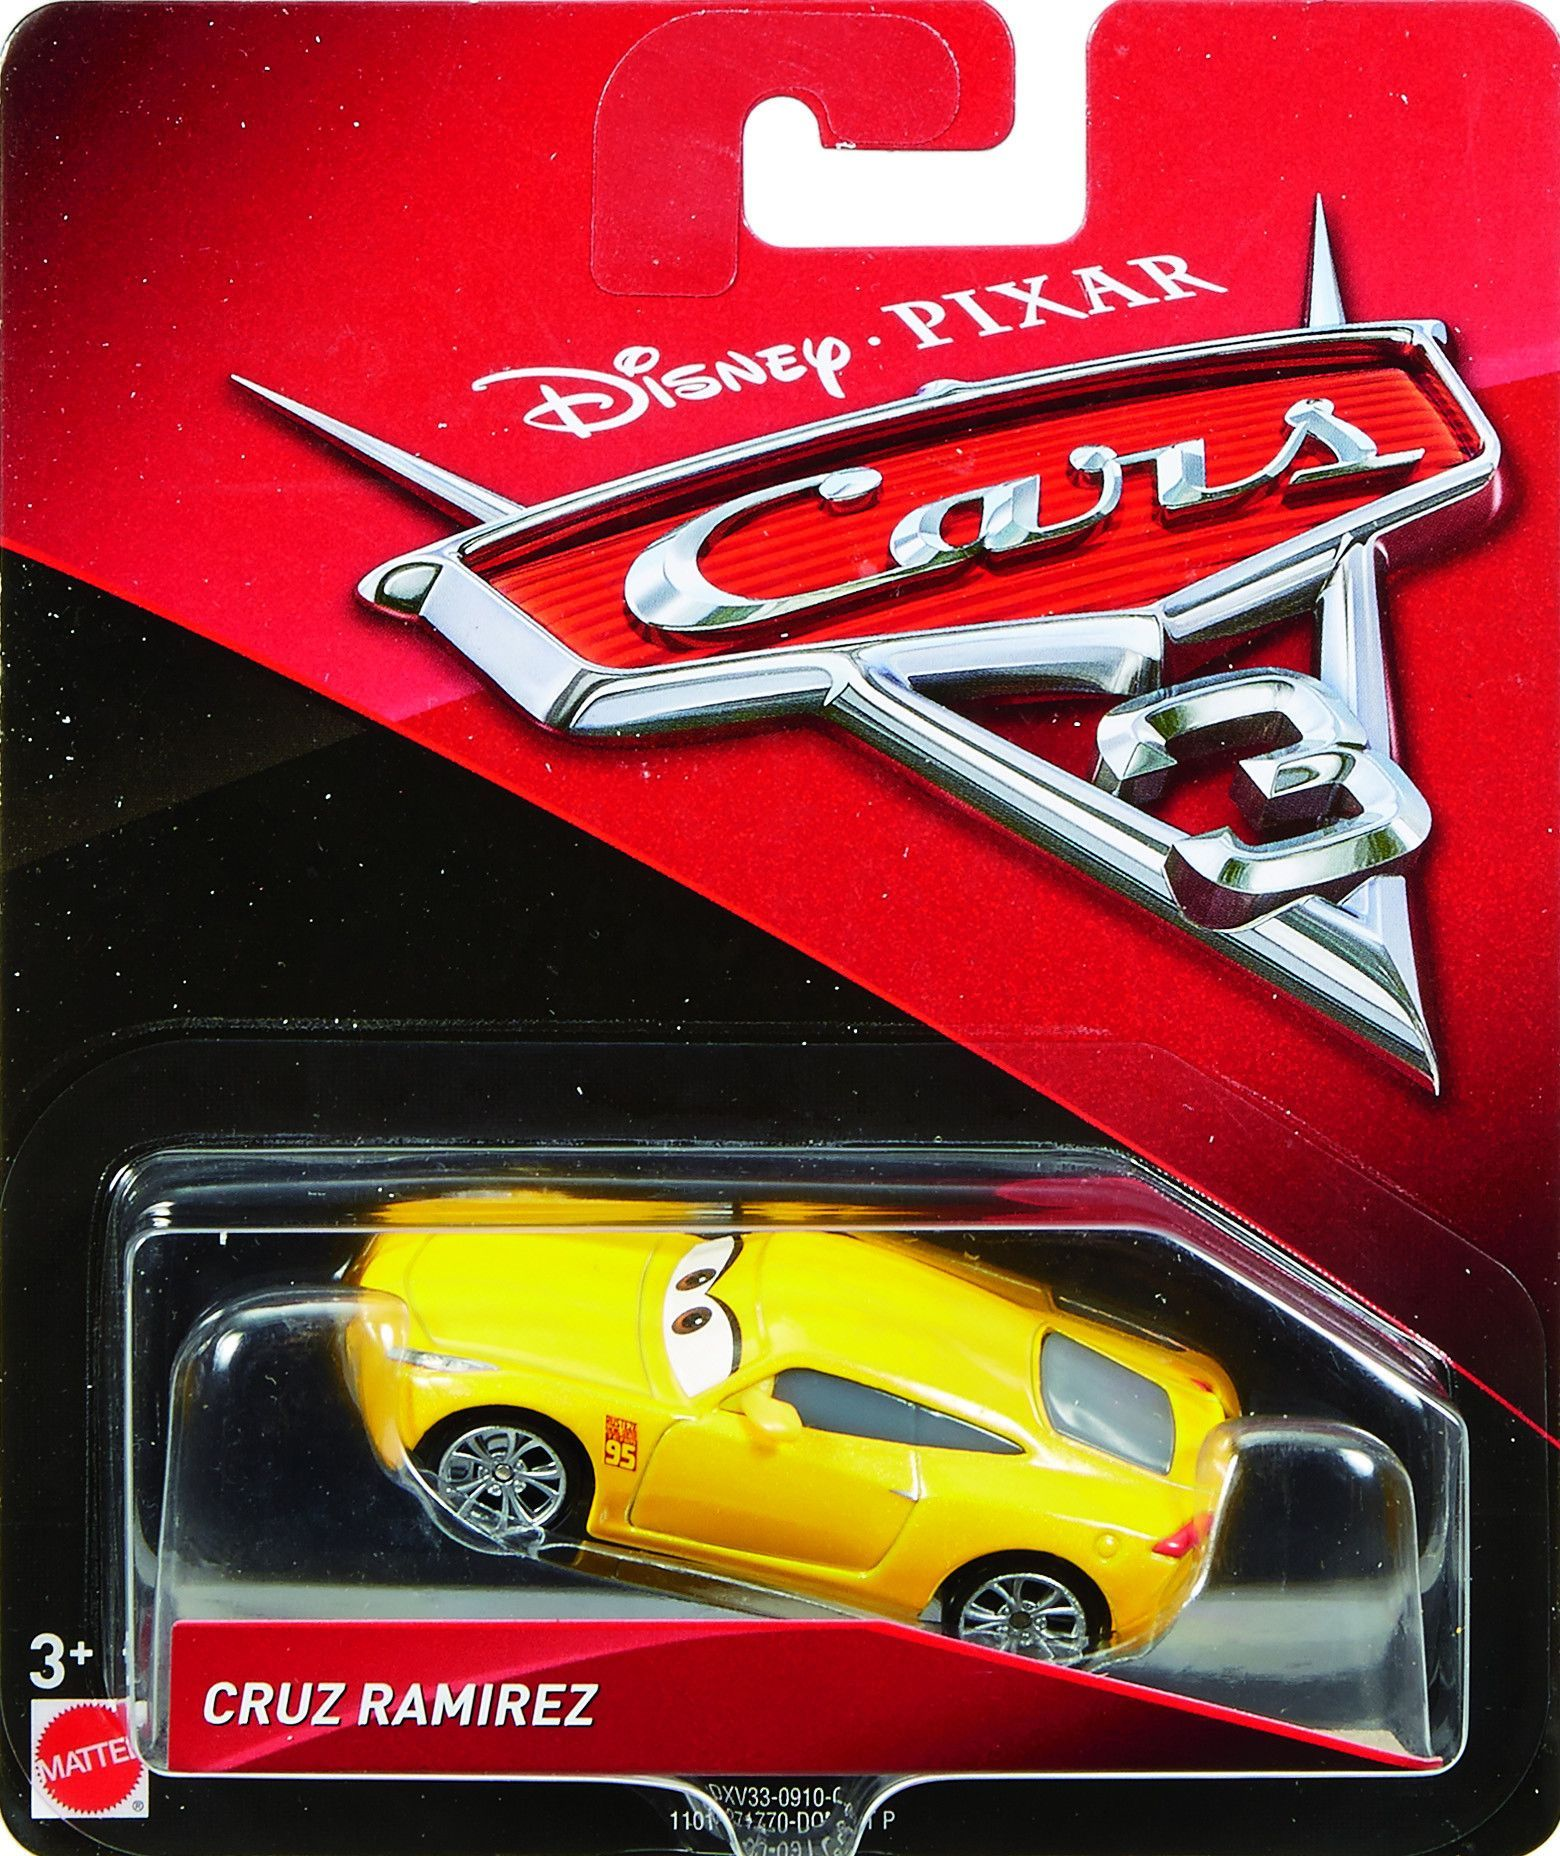 Disney Cars 3 Diecast 1 55 Scale Cruz Ramirez Disney Cars 3